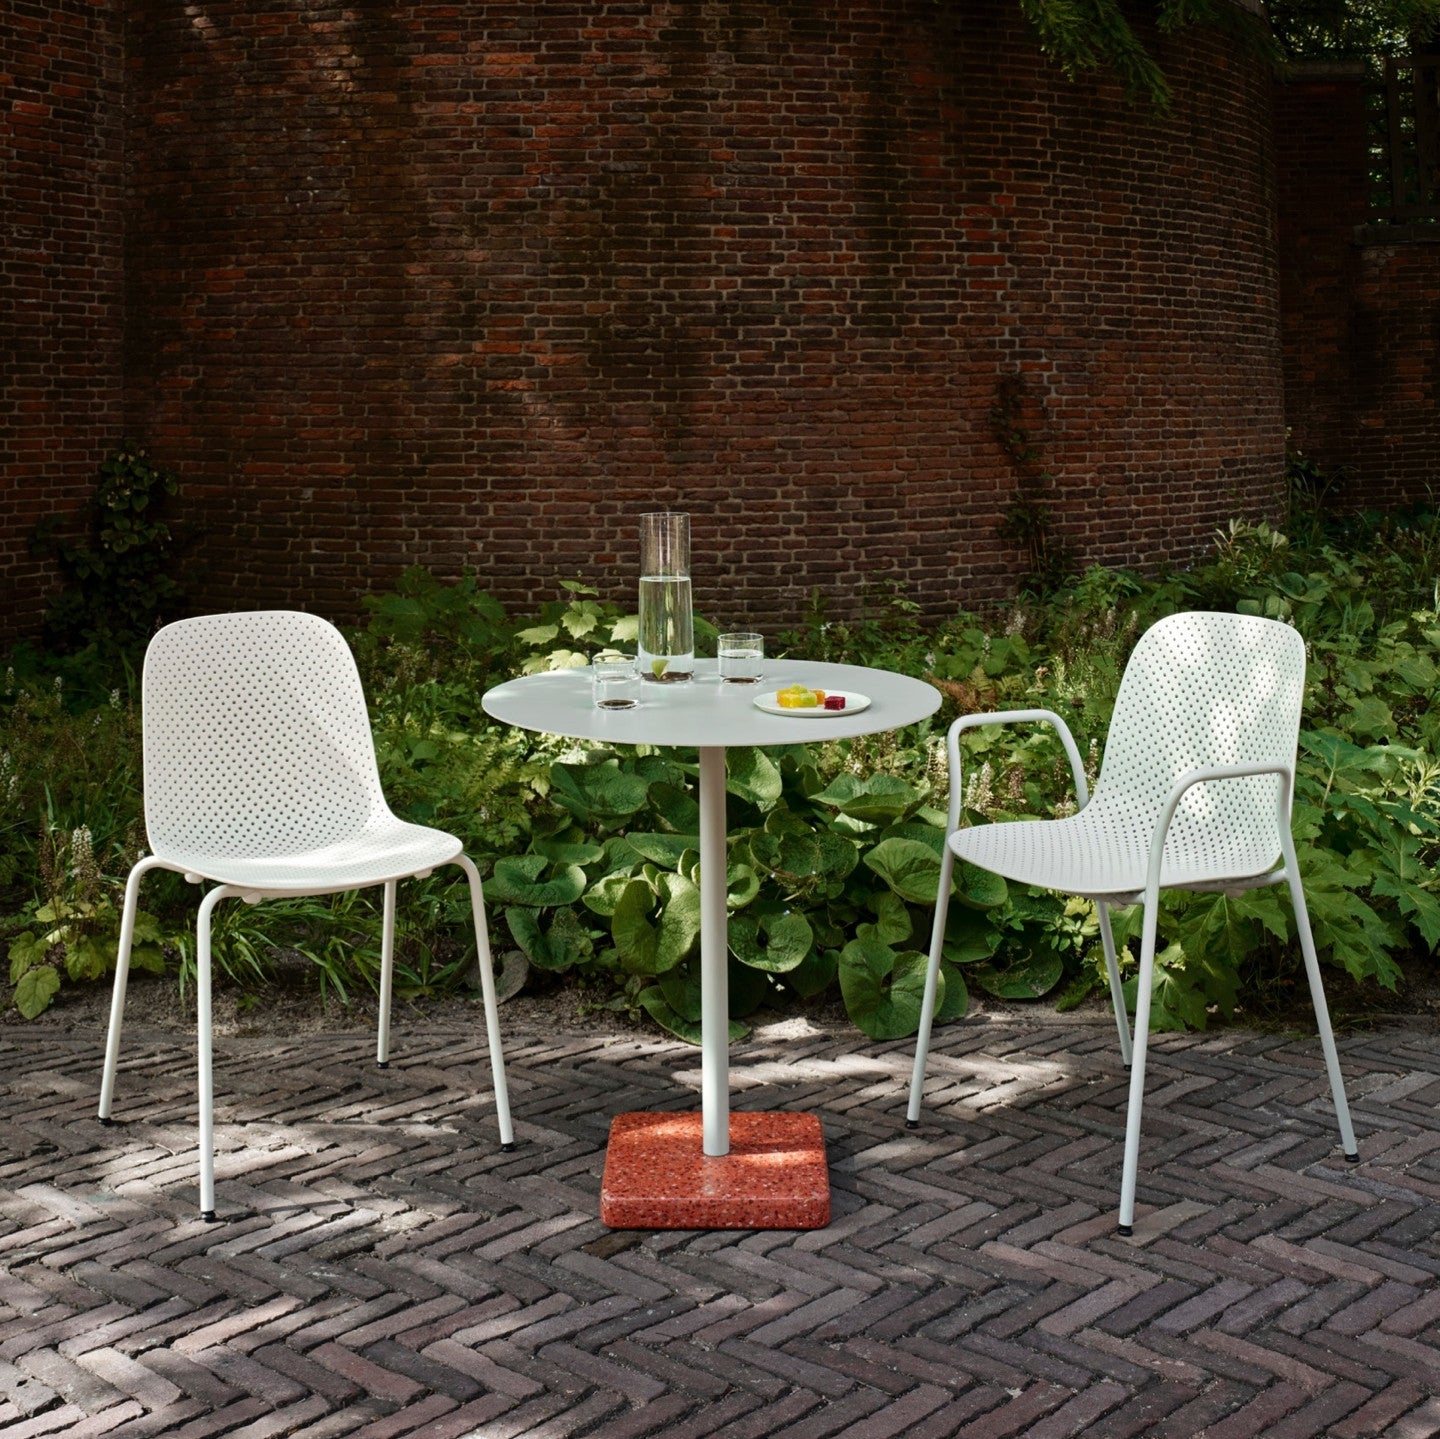 Terrazzo Table Round By Hay U2014 Haus®